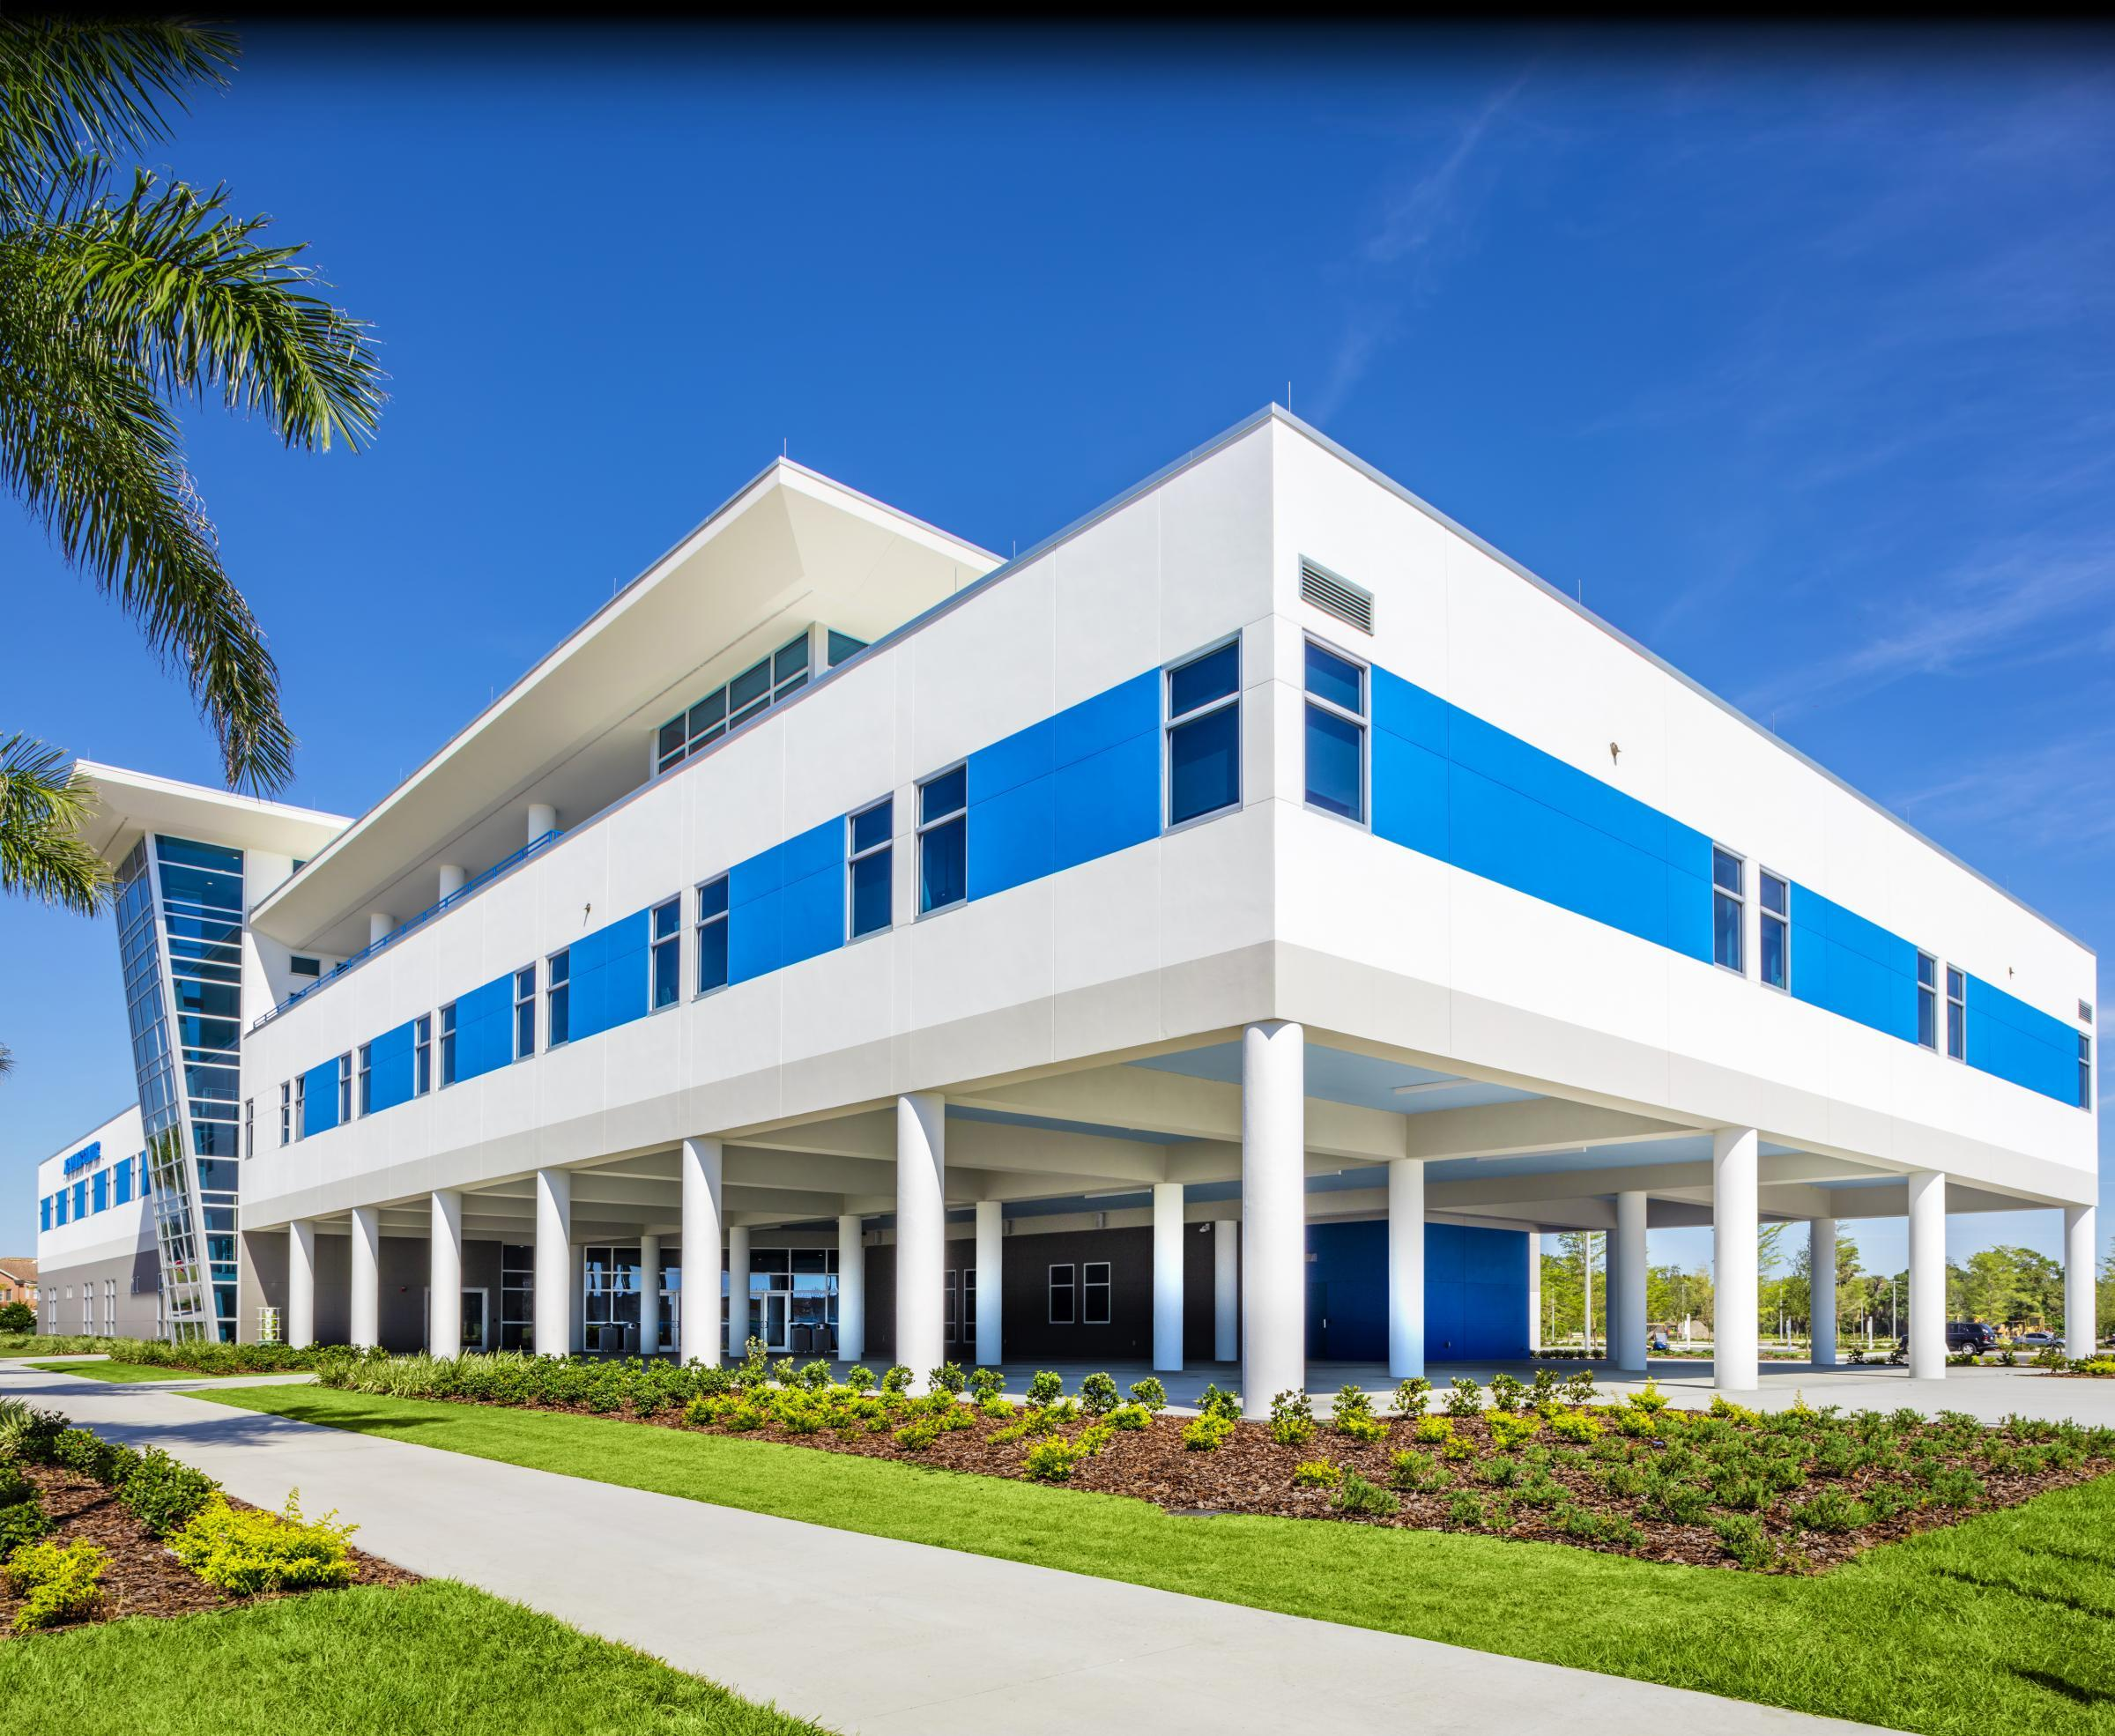 Img: IMG Academy Academic Center